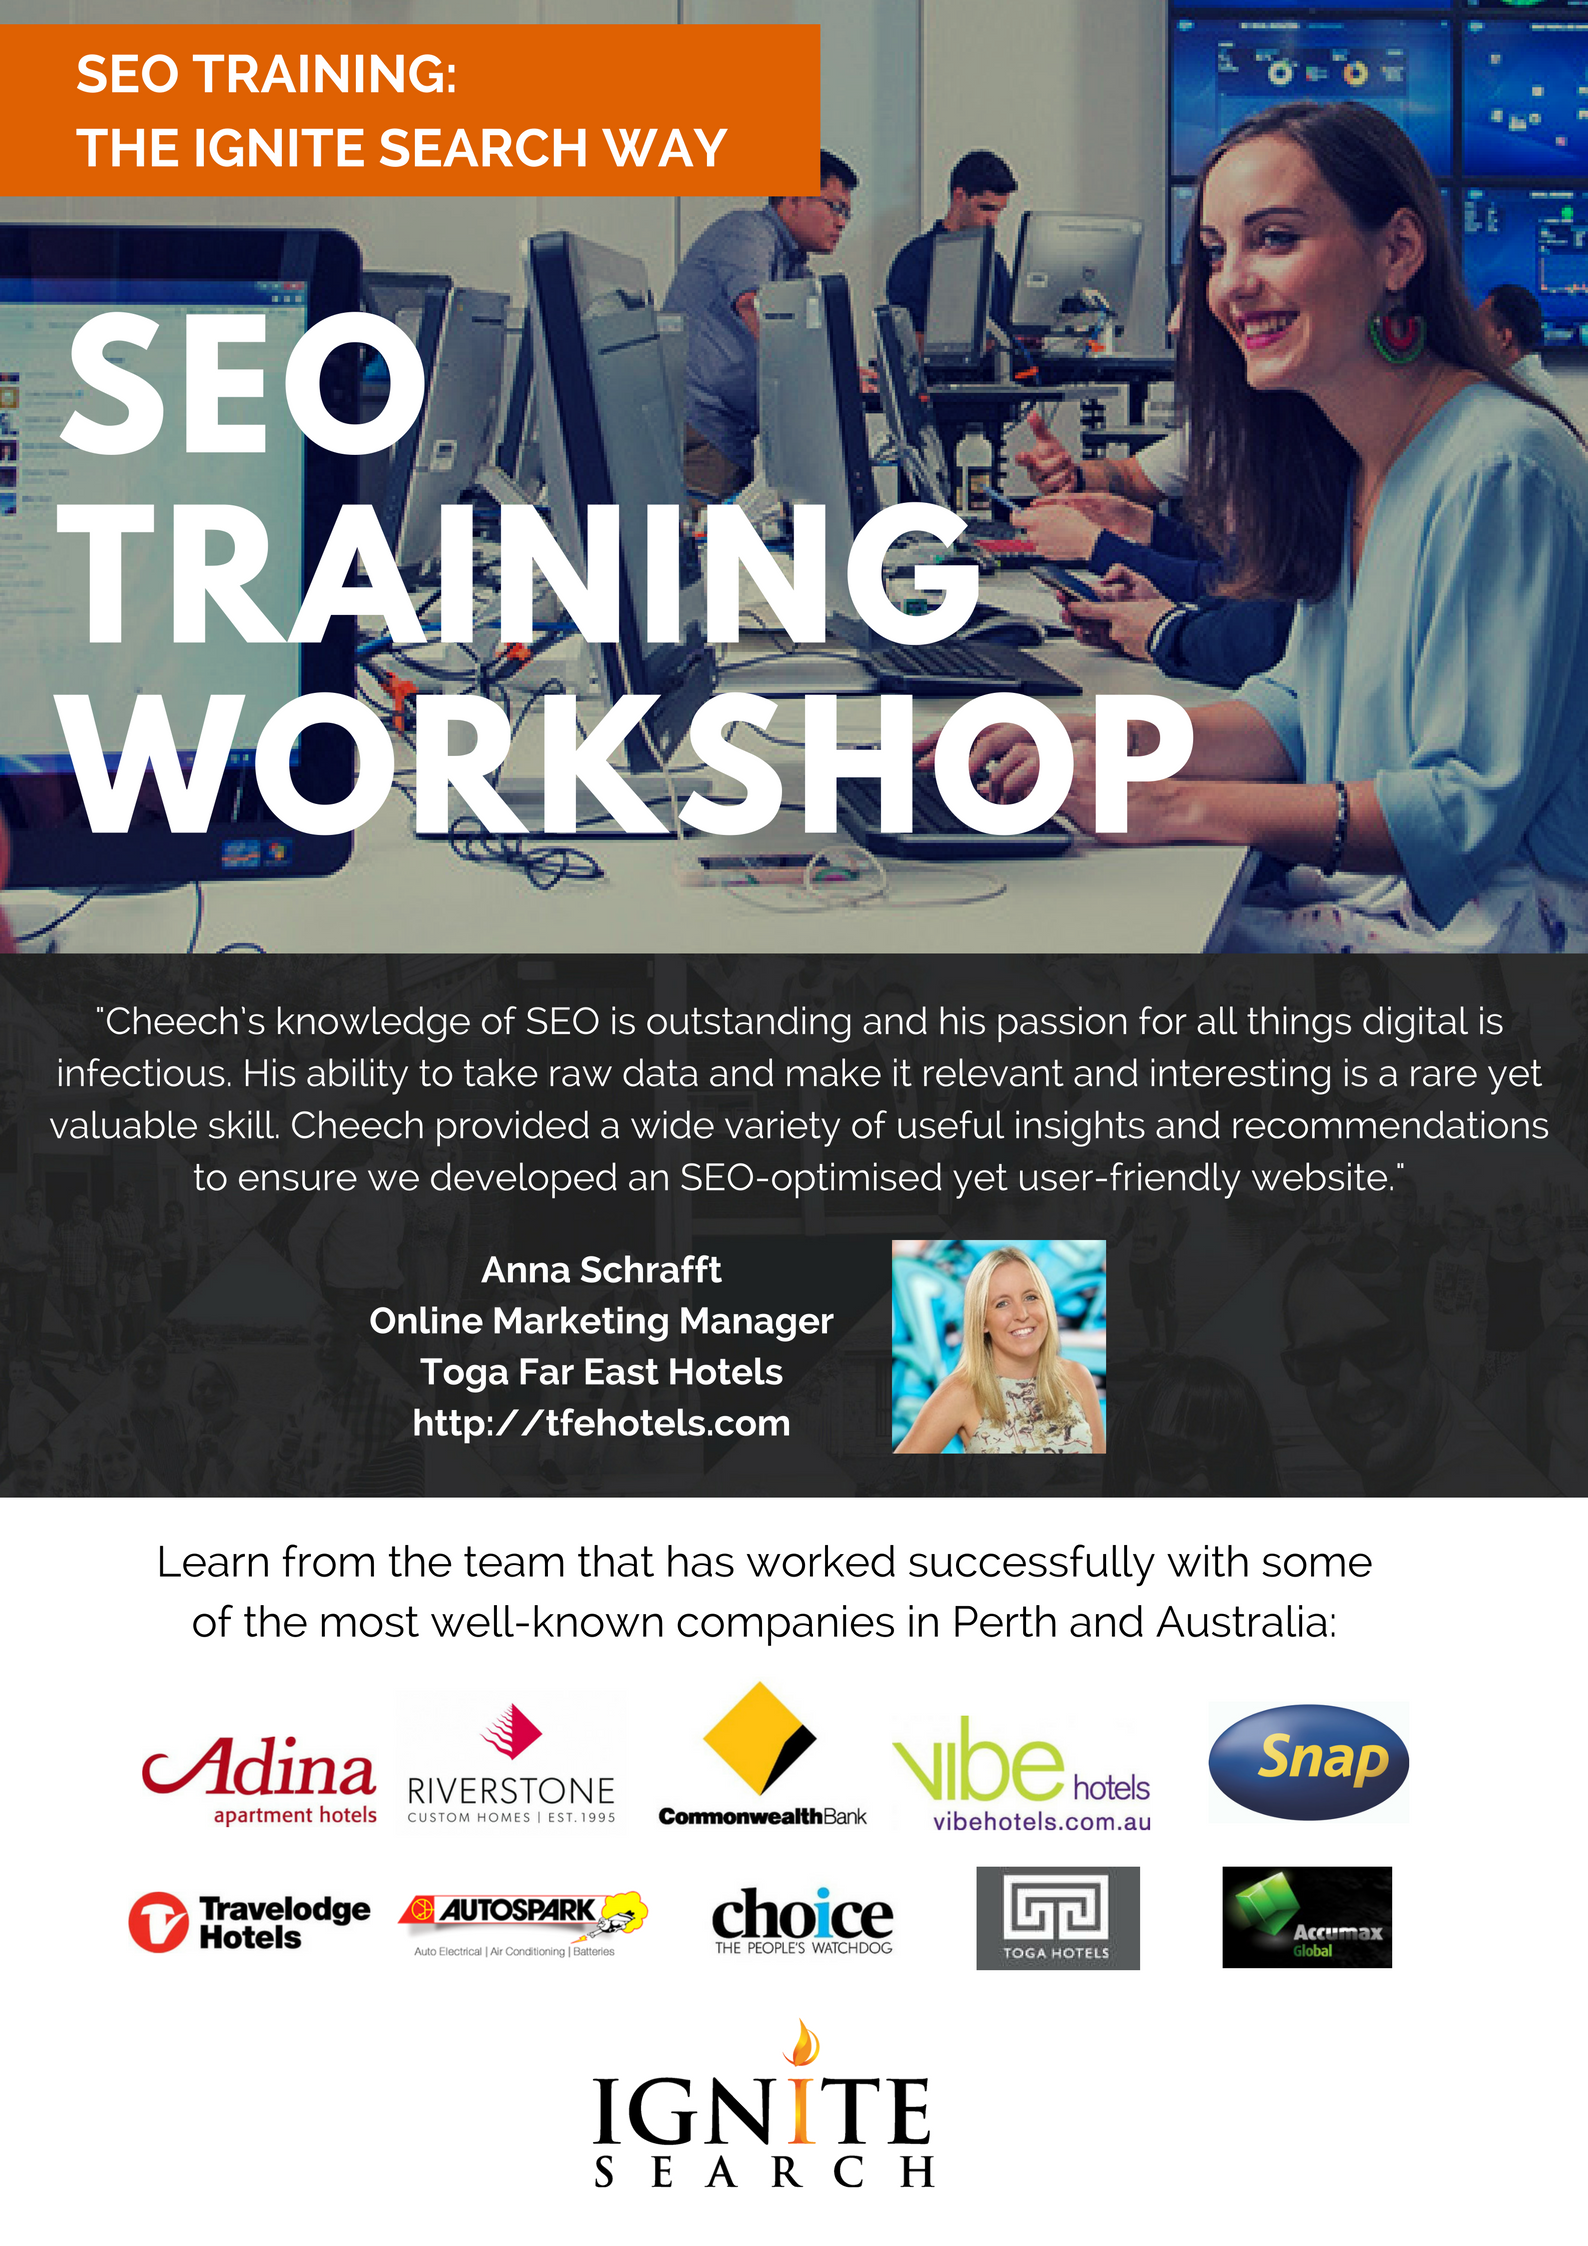 seo training flyer - back page